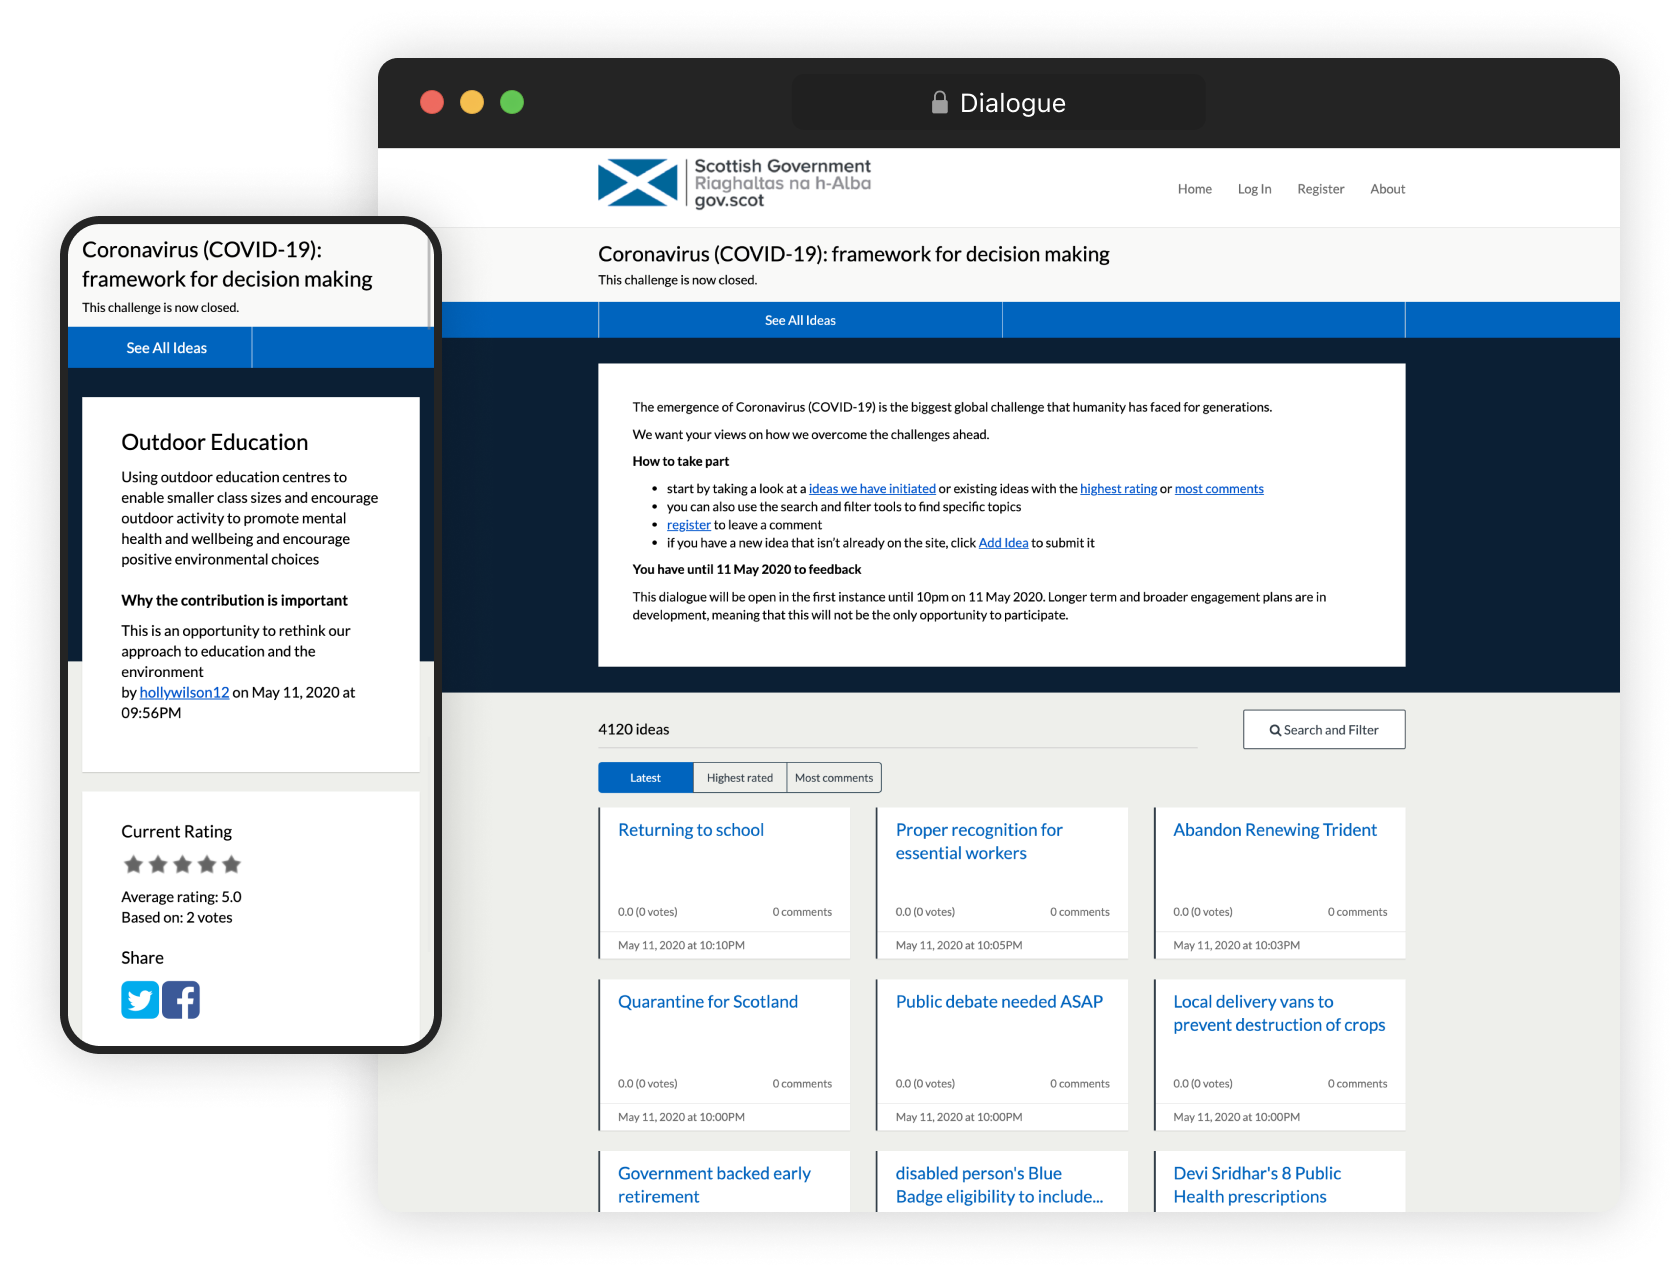 Screenshot of Scottish Government's Covid 19 conversation using Dialogue (on both a browser and mobile view)